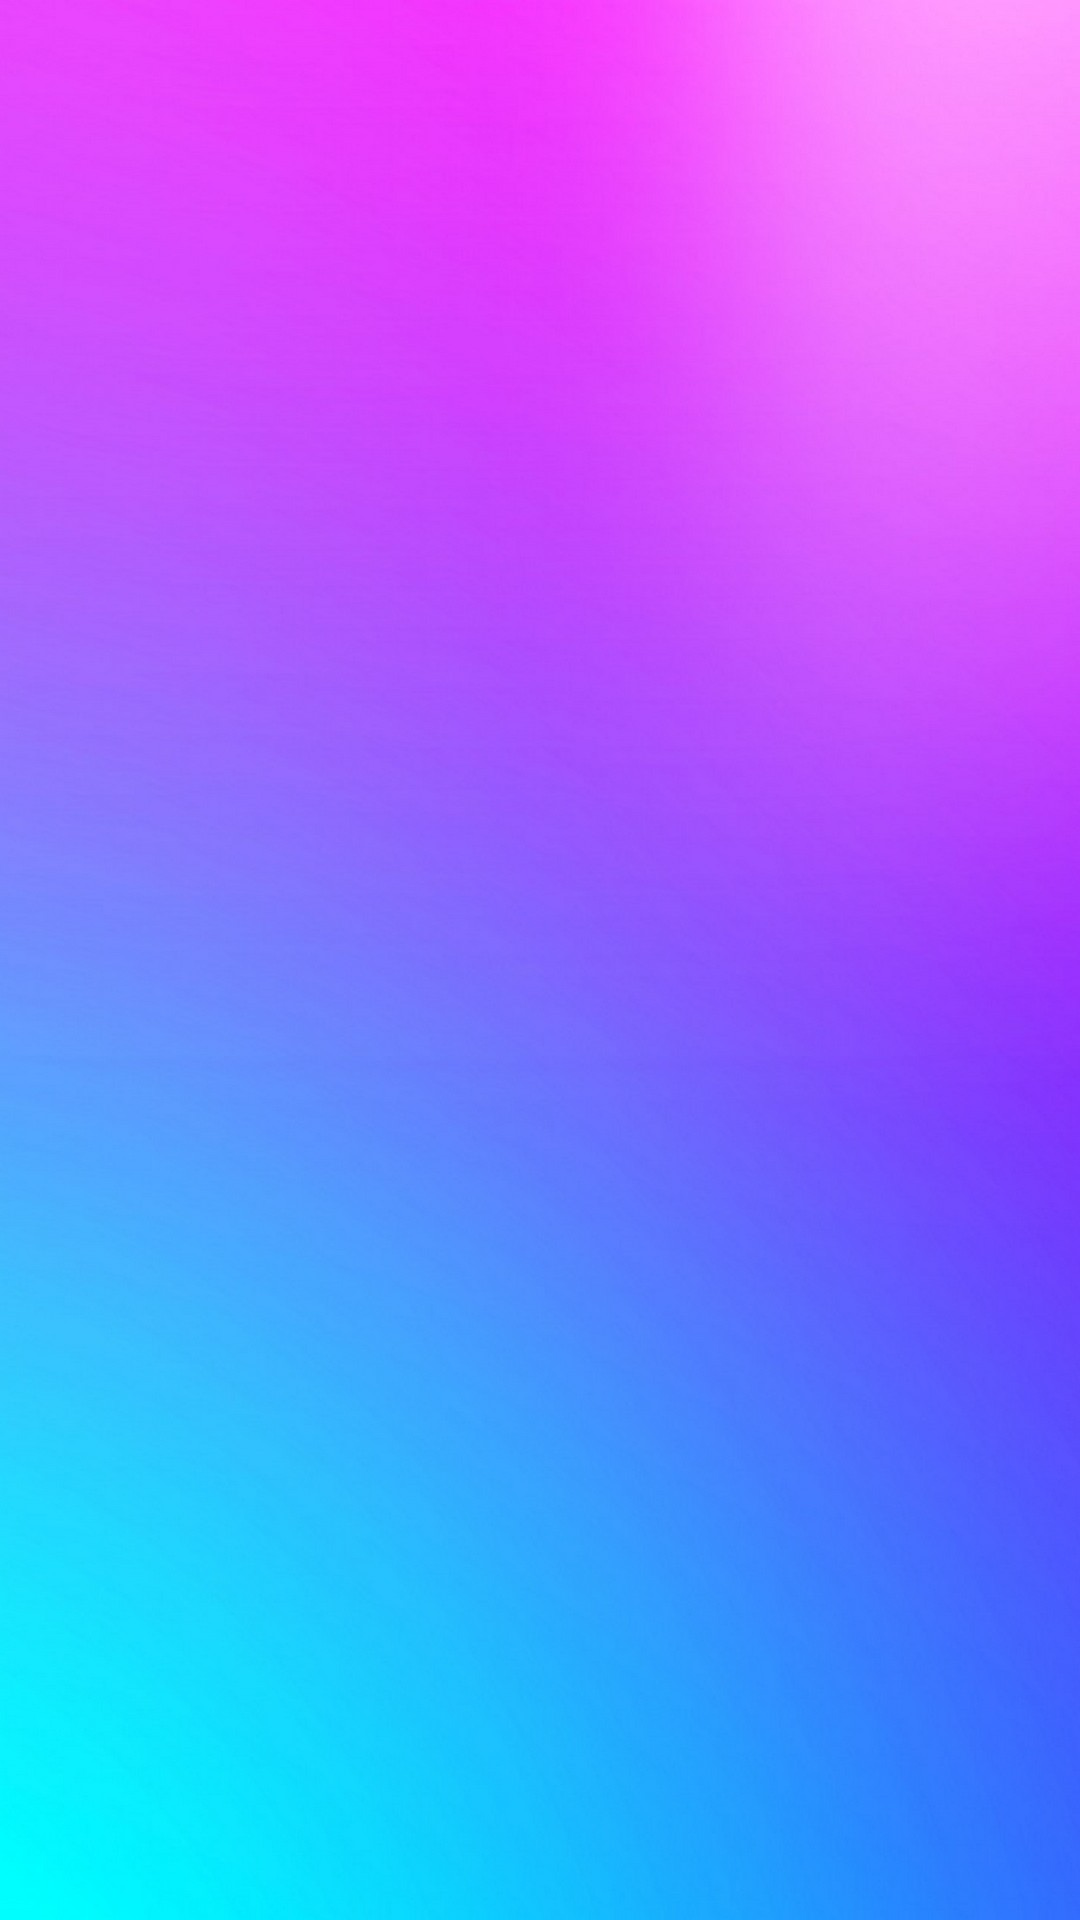 Free Download Gradient Hd Wallpapers For Android 2020 Android Wallpapers 1080x1920 For Your Desktop Mobile Tablet Explore 61 Android Mobile 2020 Hd Wallpapers Android Mobile 2020 Hd Wallpapers Hd